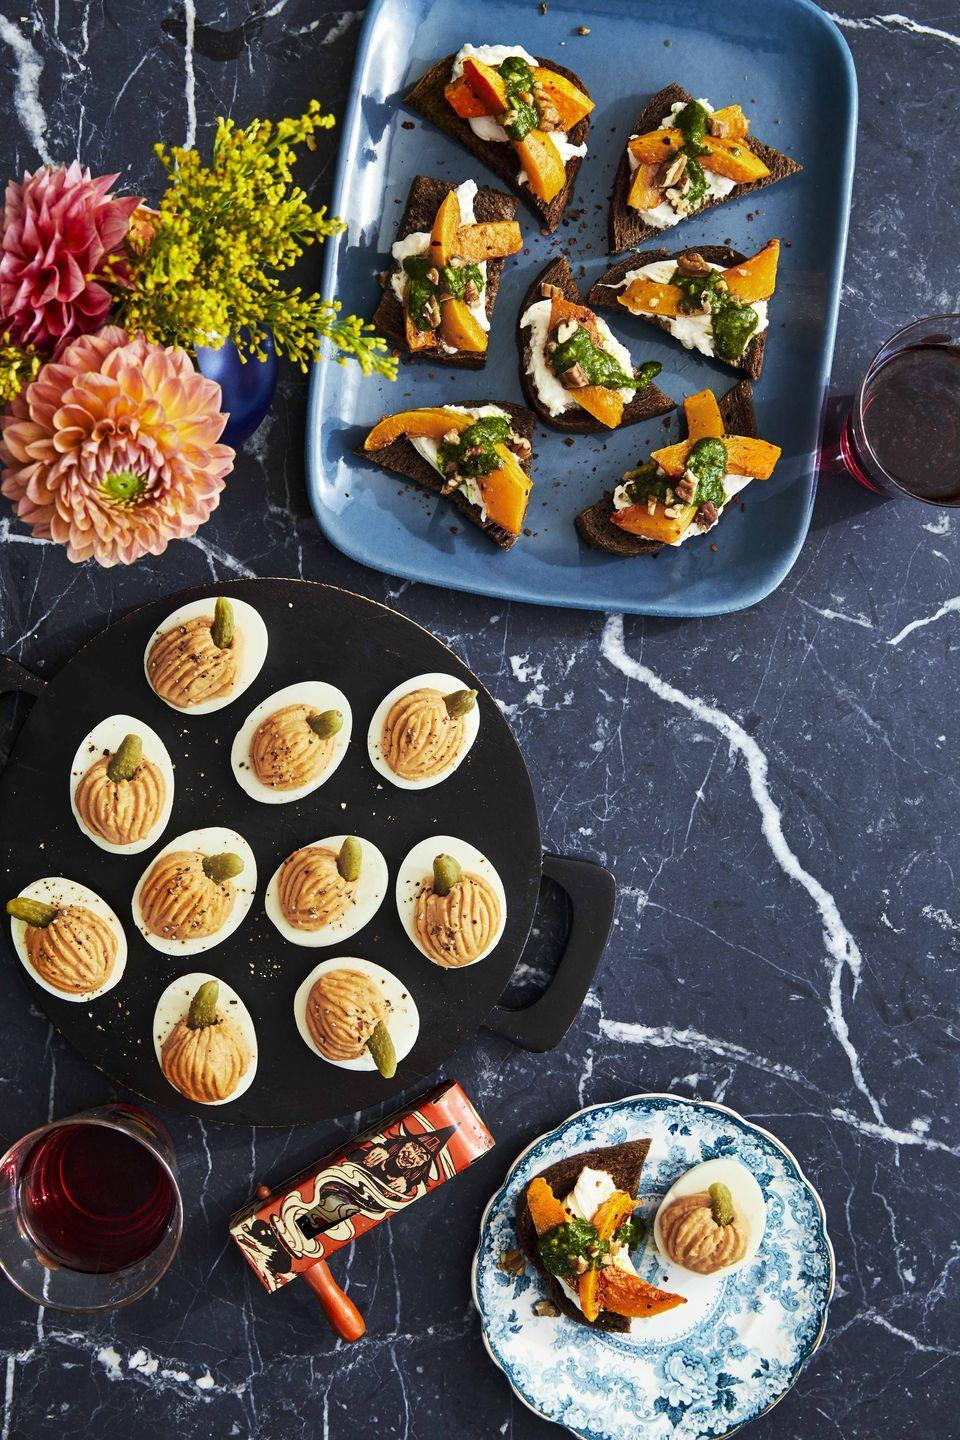 """<p>Make this simple fall-flavored recipe as a hors d'oeuvre, an appetizer, or an afternoon snack.</p><p><strong><a href=""""https://www.countryliving.com/food-drinks/a33943615/pumpkin-and-pesto-crostini/"""" rel=""""nofollow noopener"""" target=""""_blank"""" data-ylk=""""slk:Get the recipe"""" class=""""link rapid-noclick-resp"""">Get the recipe</a>.</strong></p><p><strong><a class=""""link rapid-noclick-resp"""" href=""""https://www.amazon.com/Nutribullet-Superfood-Nutrition-Extractor-NBR-0601/dp/B07CTBHQZK/?tag=syn-yahoo-20&ascsubtag=%5Bartid%7C10050.g.619%5Bsrc%7Cyahoo-us"""" rel=""""nofollow noopener"""" target=""""_blank"""" data-ylk=""""slk:SHOP BLENDERS"""">SHOP BLENDERS</a><br></strong></p>"""